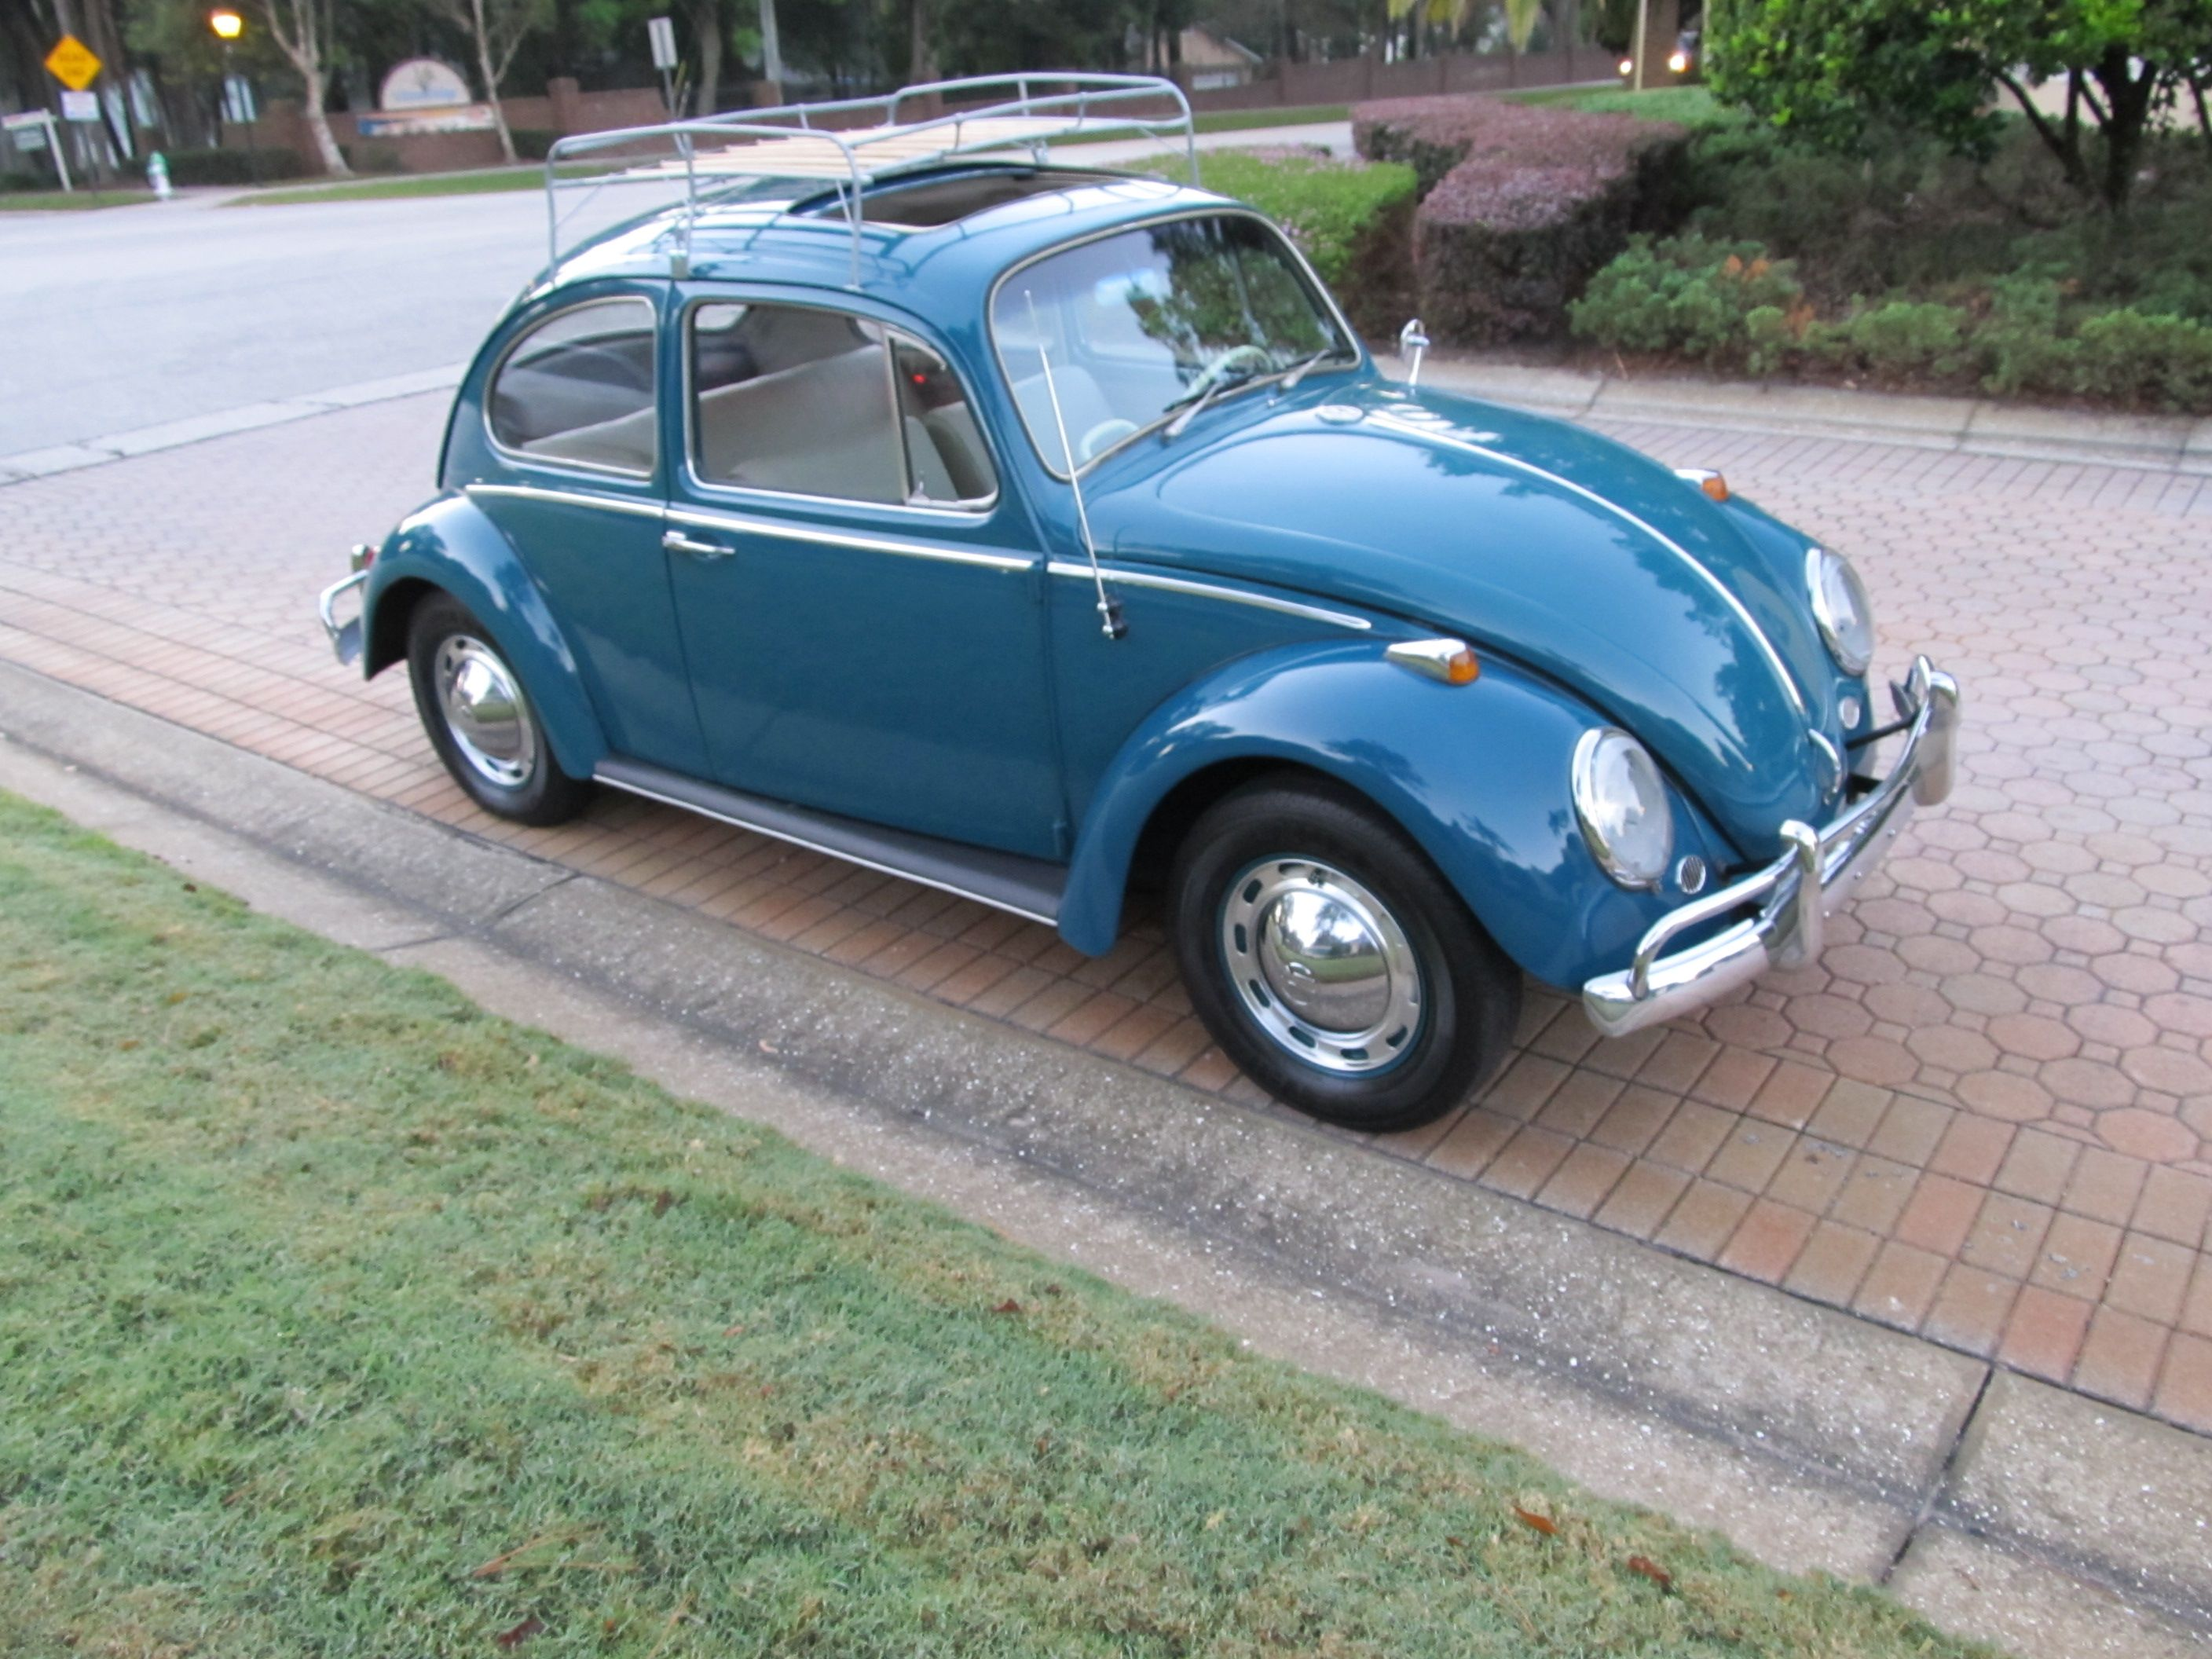 1965 Volkswagen Beetle A Nicely Restored Sunroof Bug Finished In Sea Blue With The New Bone Interior Includ Vw Beetle Classic Vw Beetle For Sale Volkswagen